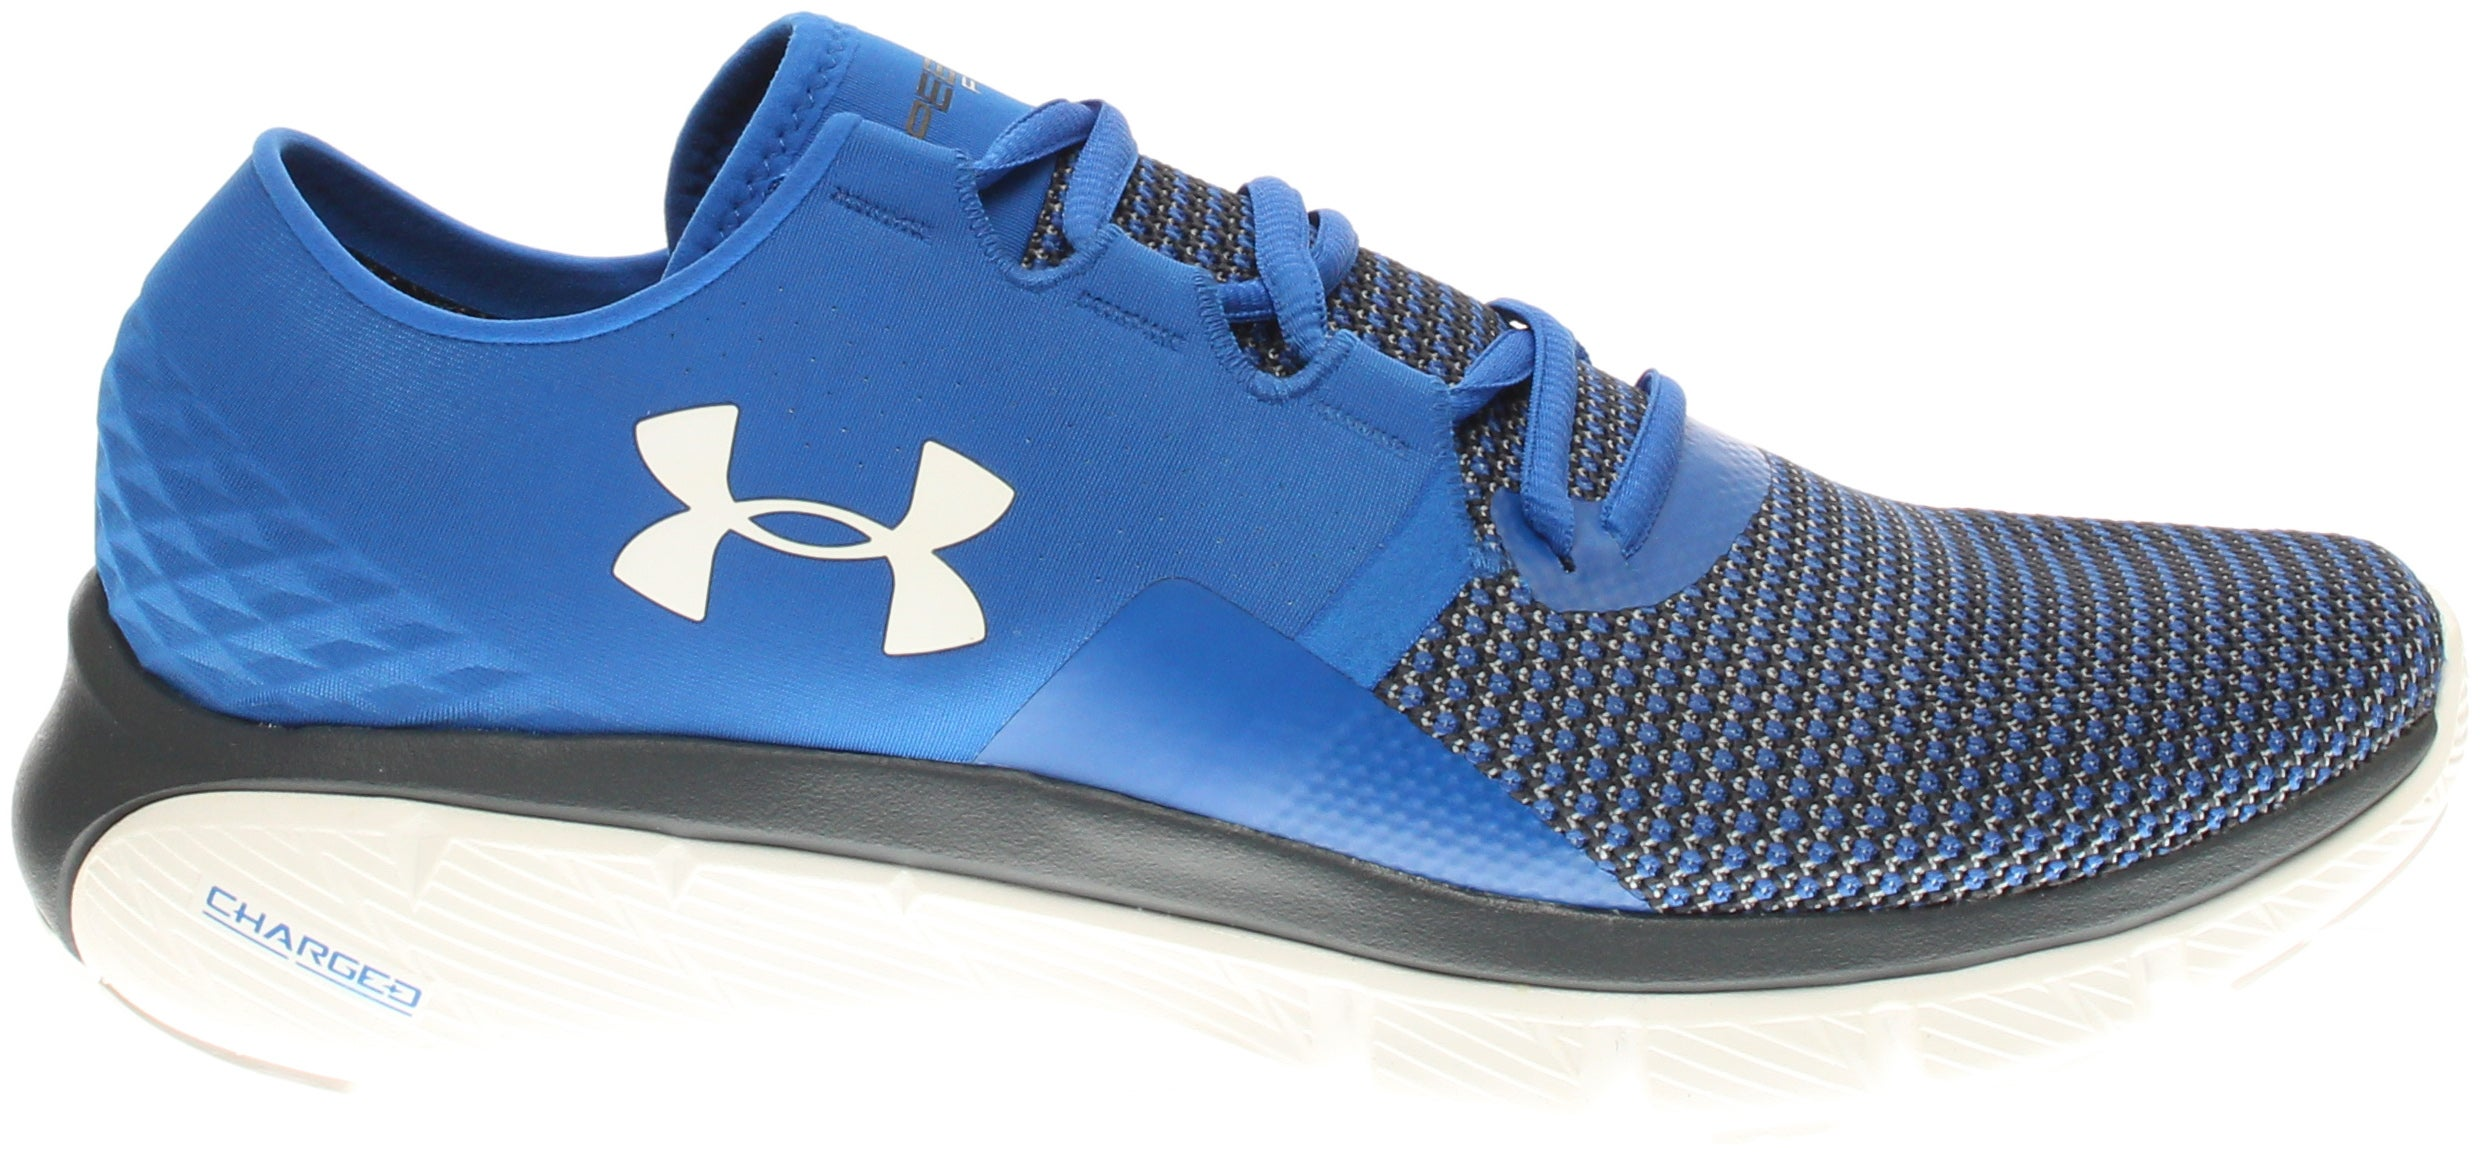 Under Armour Speedform Fortis 2 Blue - Mens  - Size 11.5